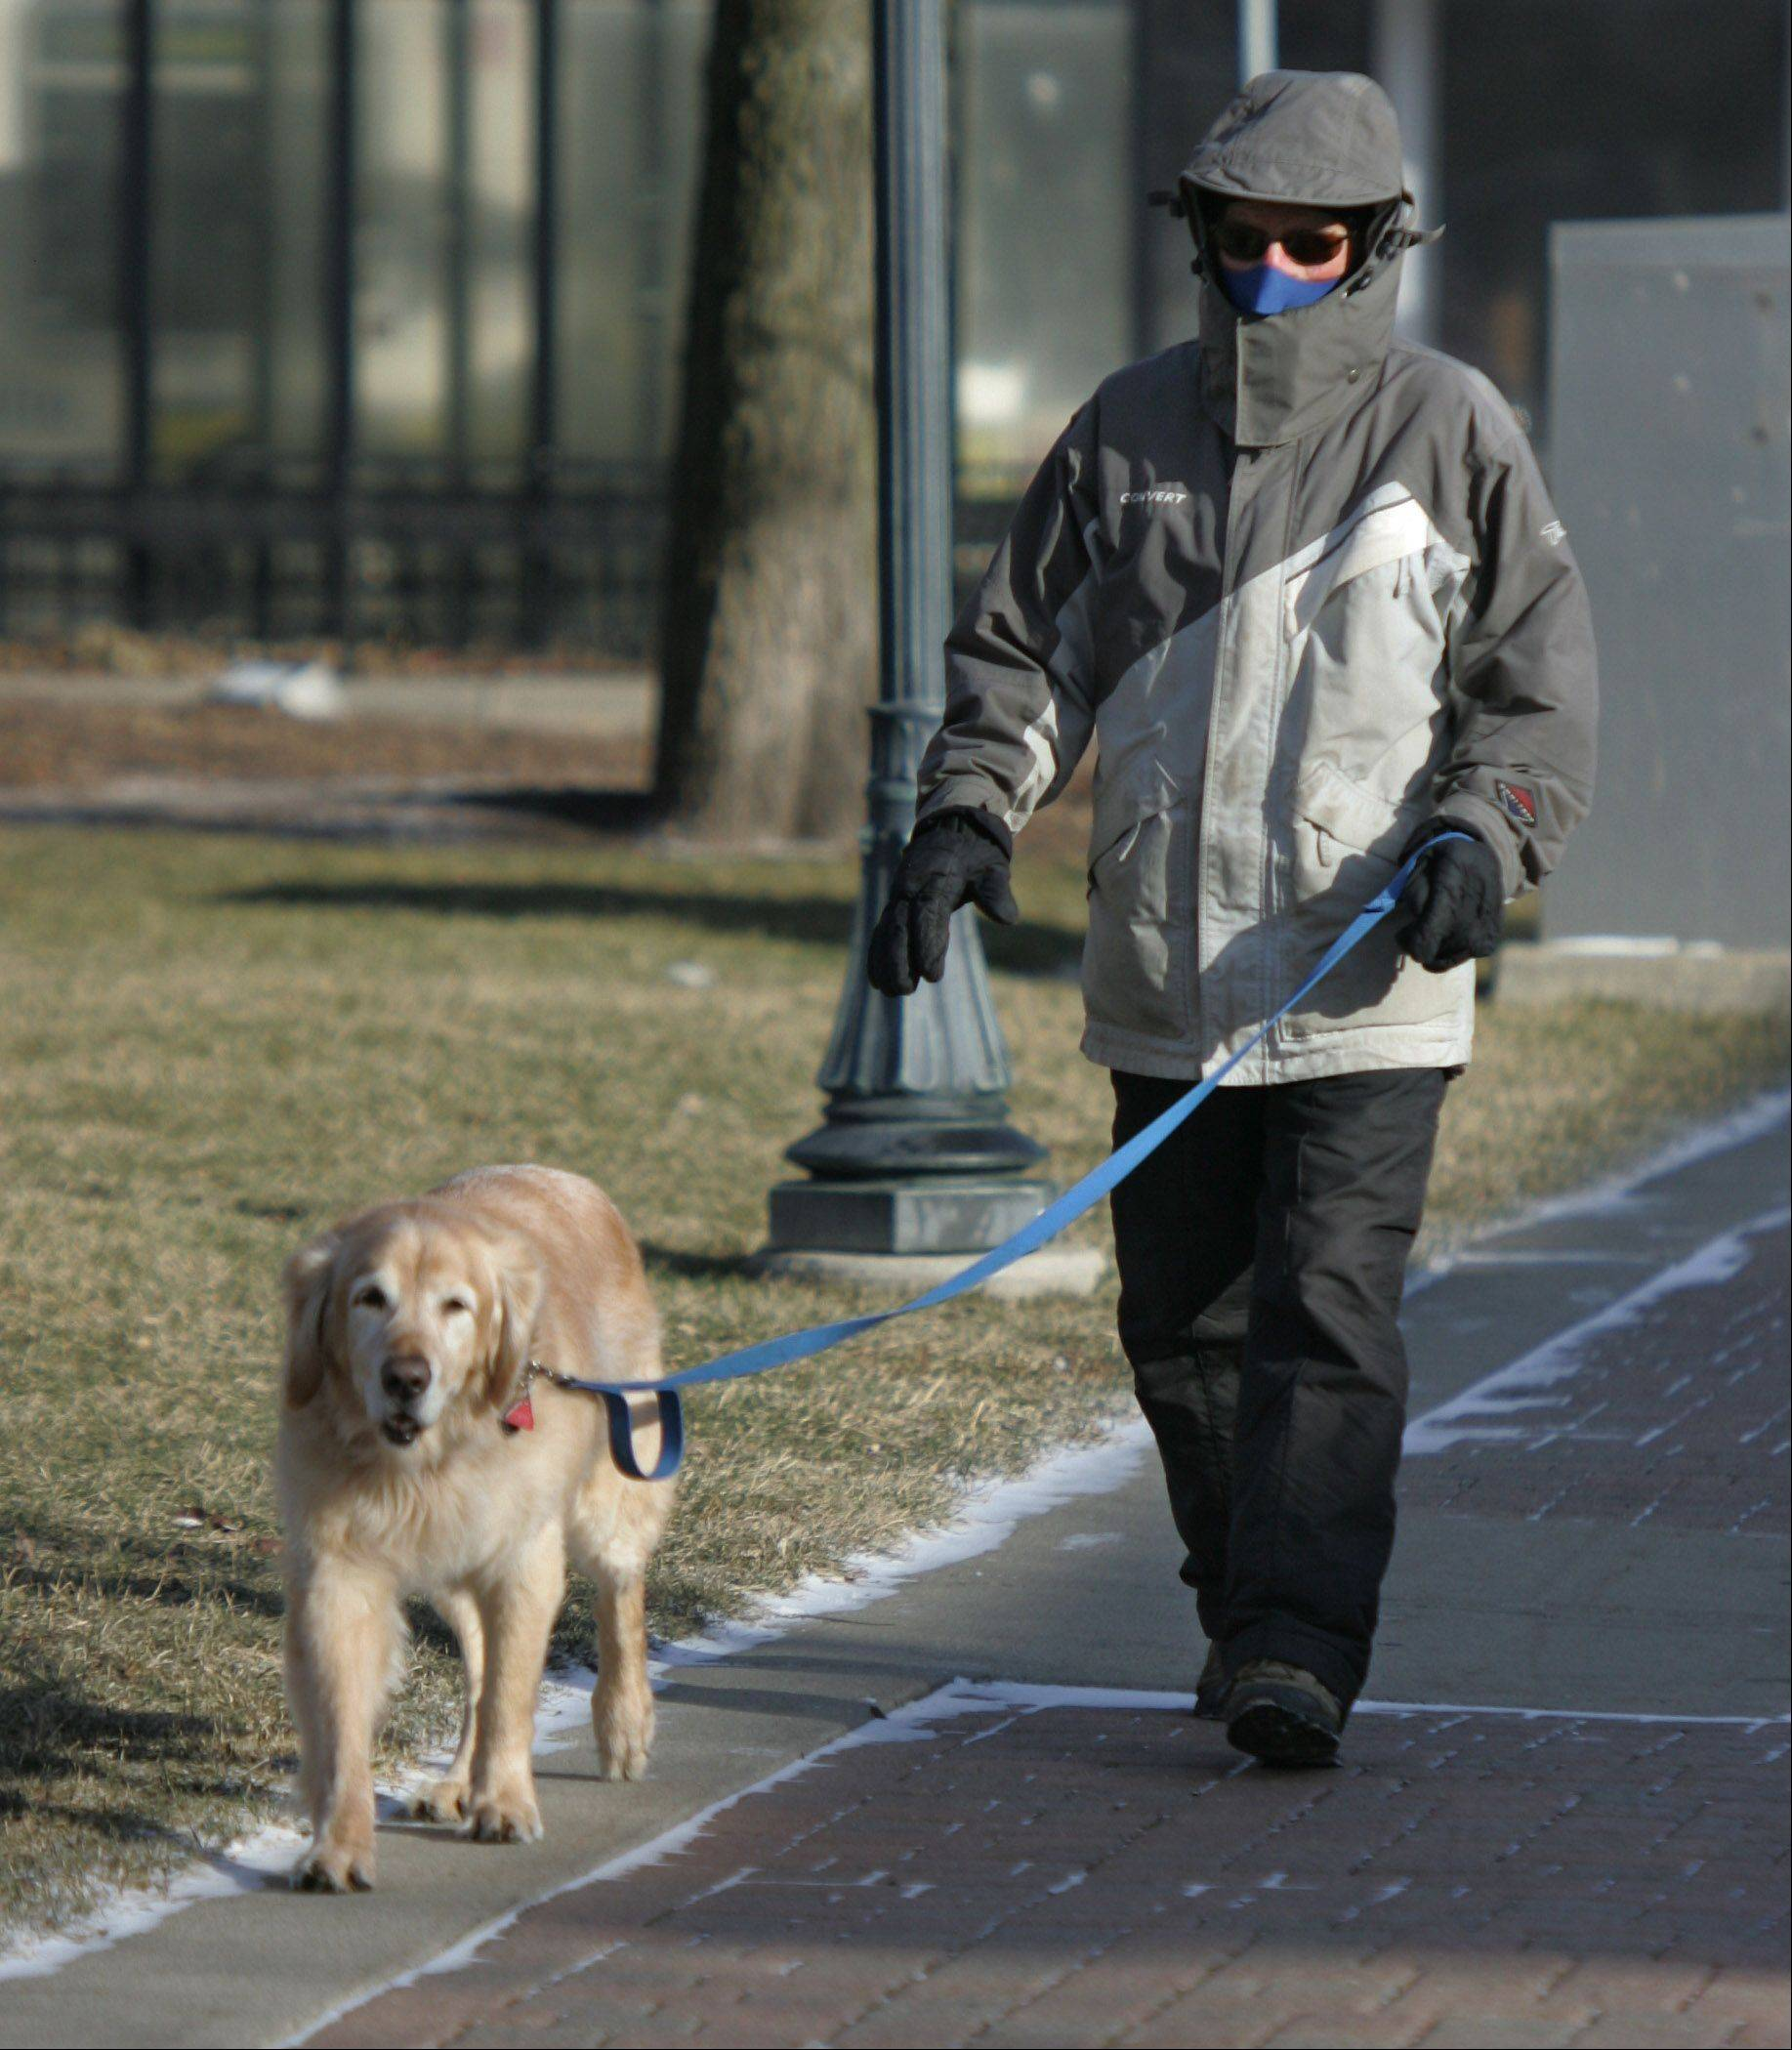 Jim Murphy, of Libertyville, is bundled up as he walks his dog, Edison, in frigid weather at Cook Memorial Park in Libertyville.